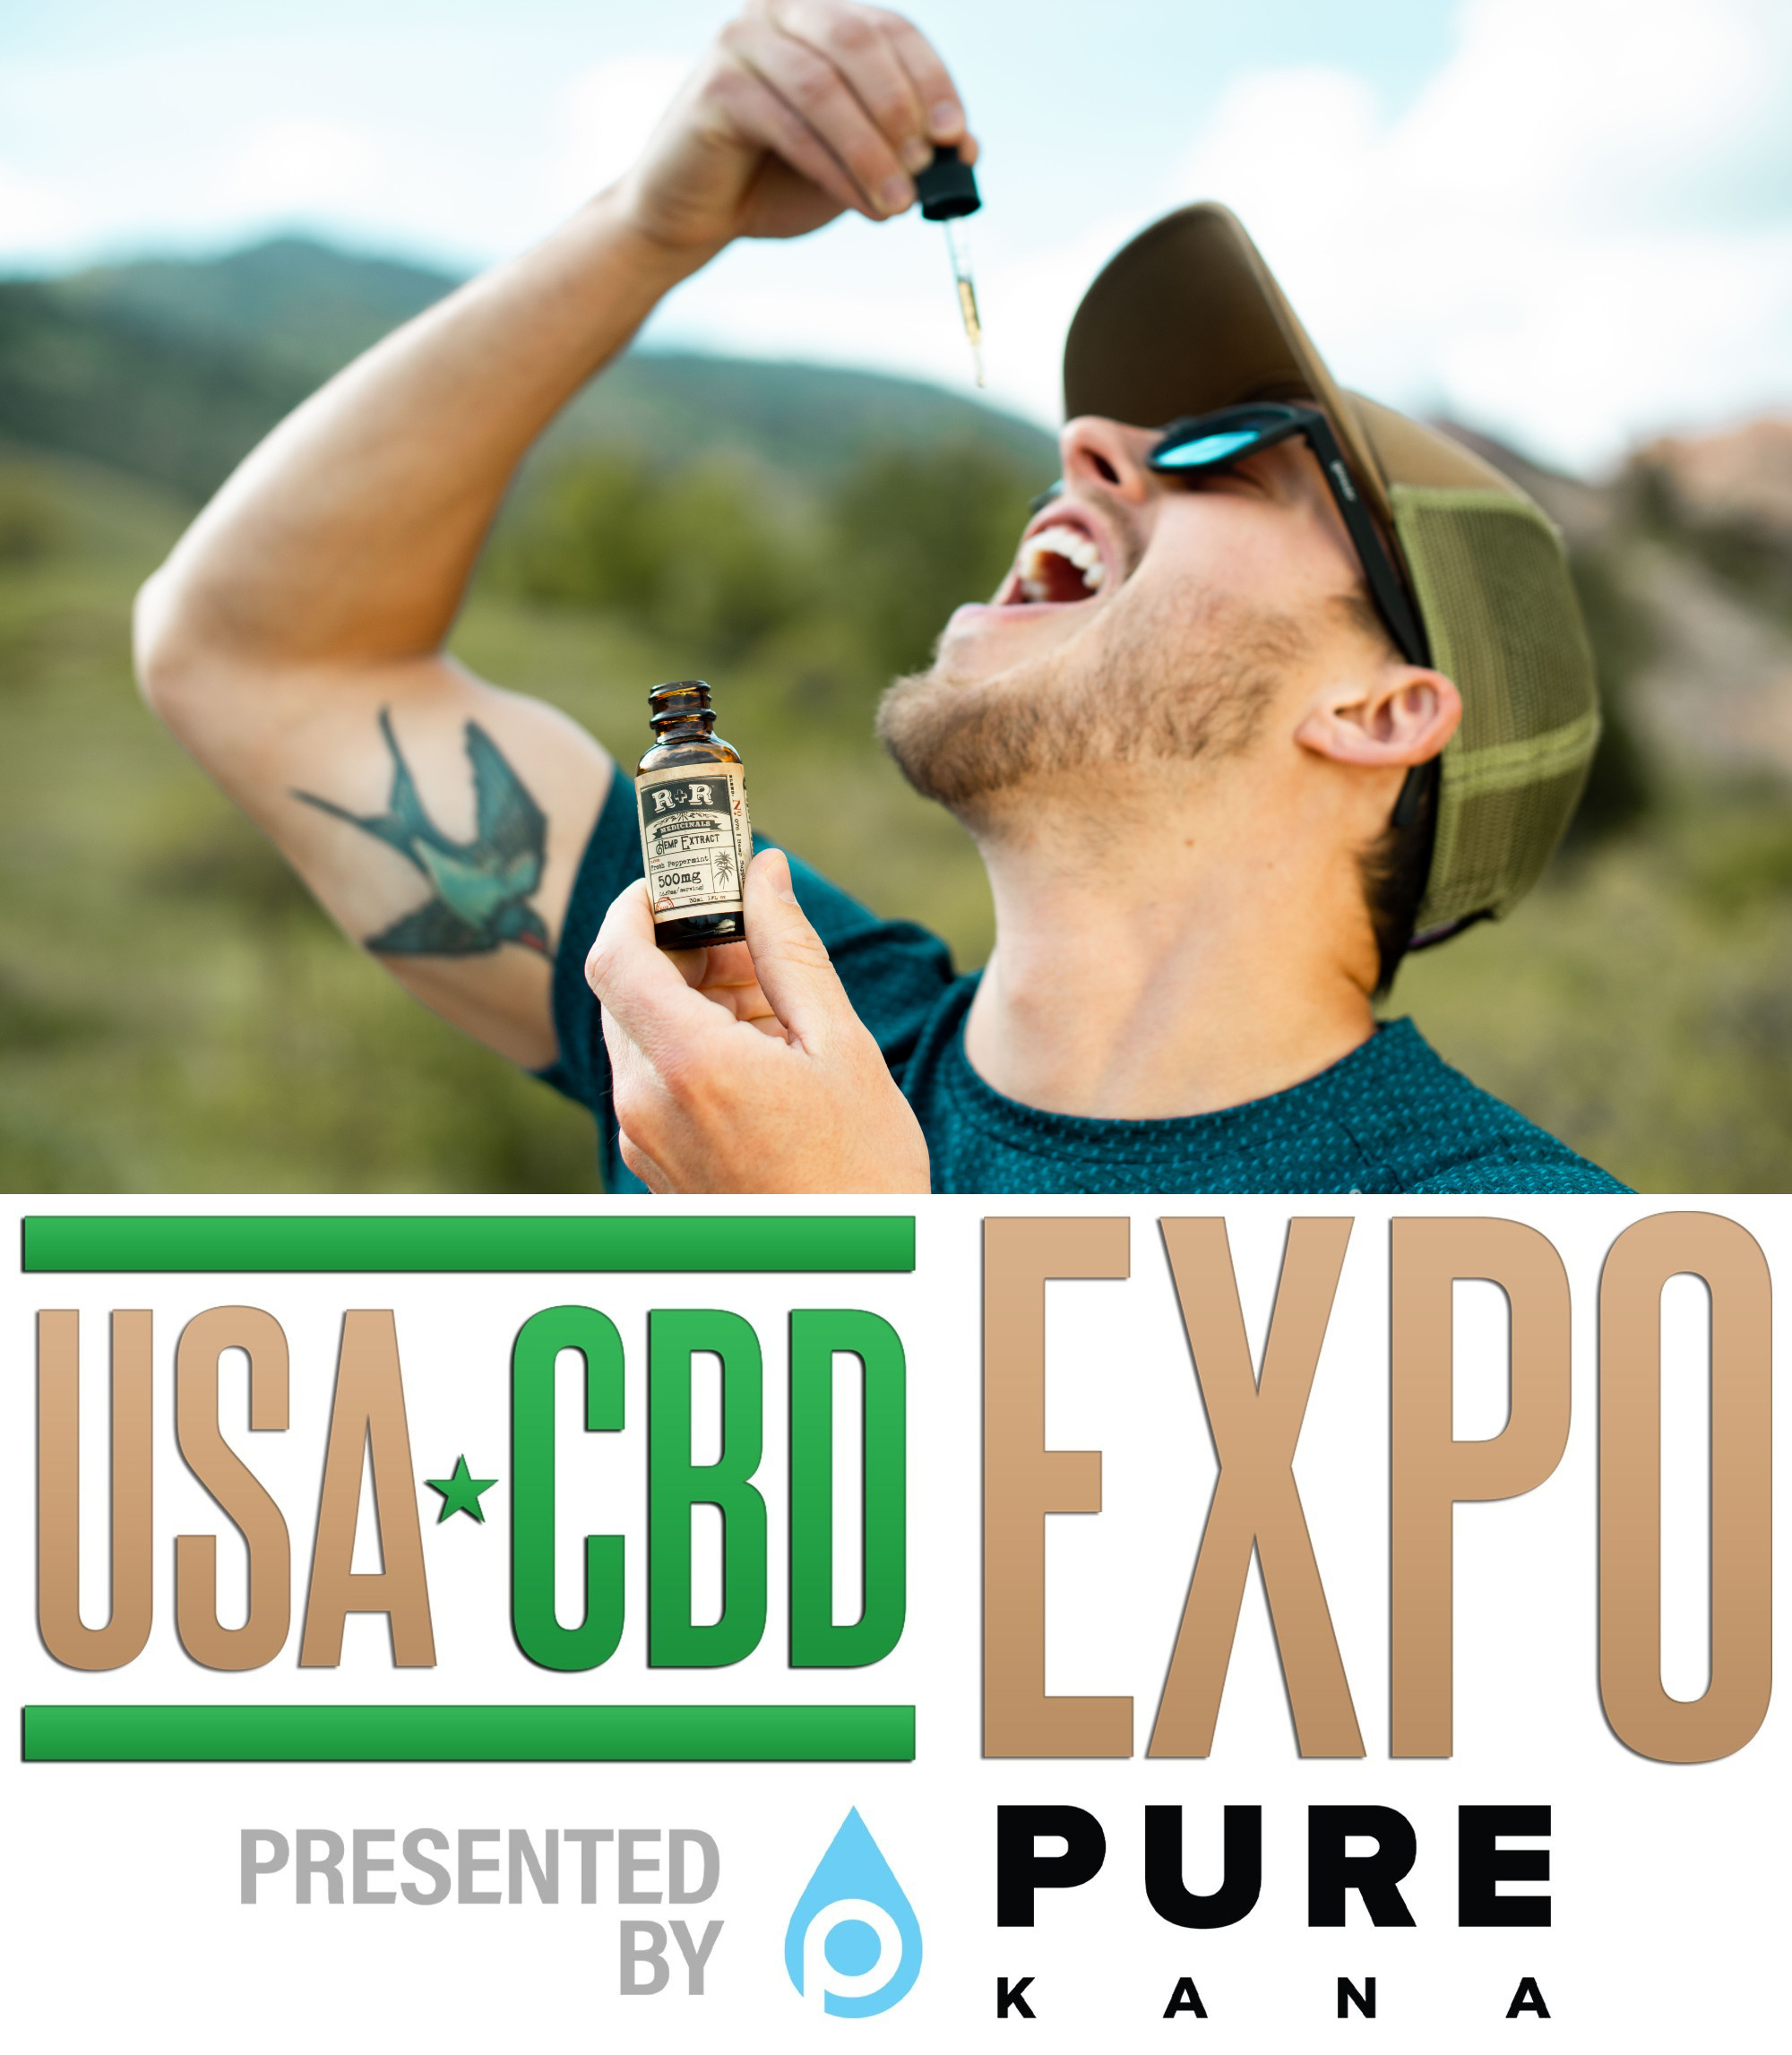 (Top) Man taking CBD hemp extract oil. (Bottom) USA CBD Expo logo.